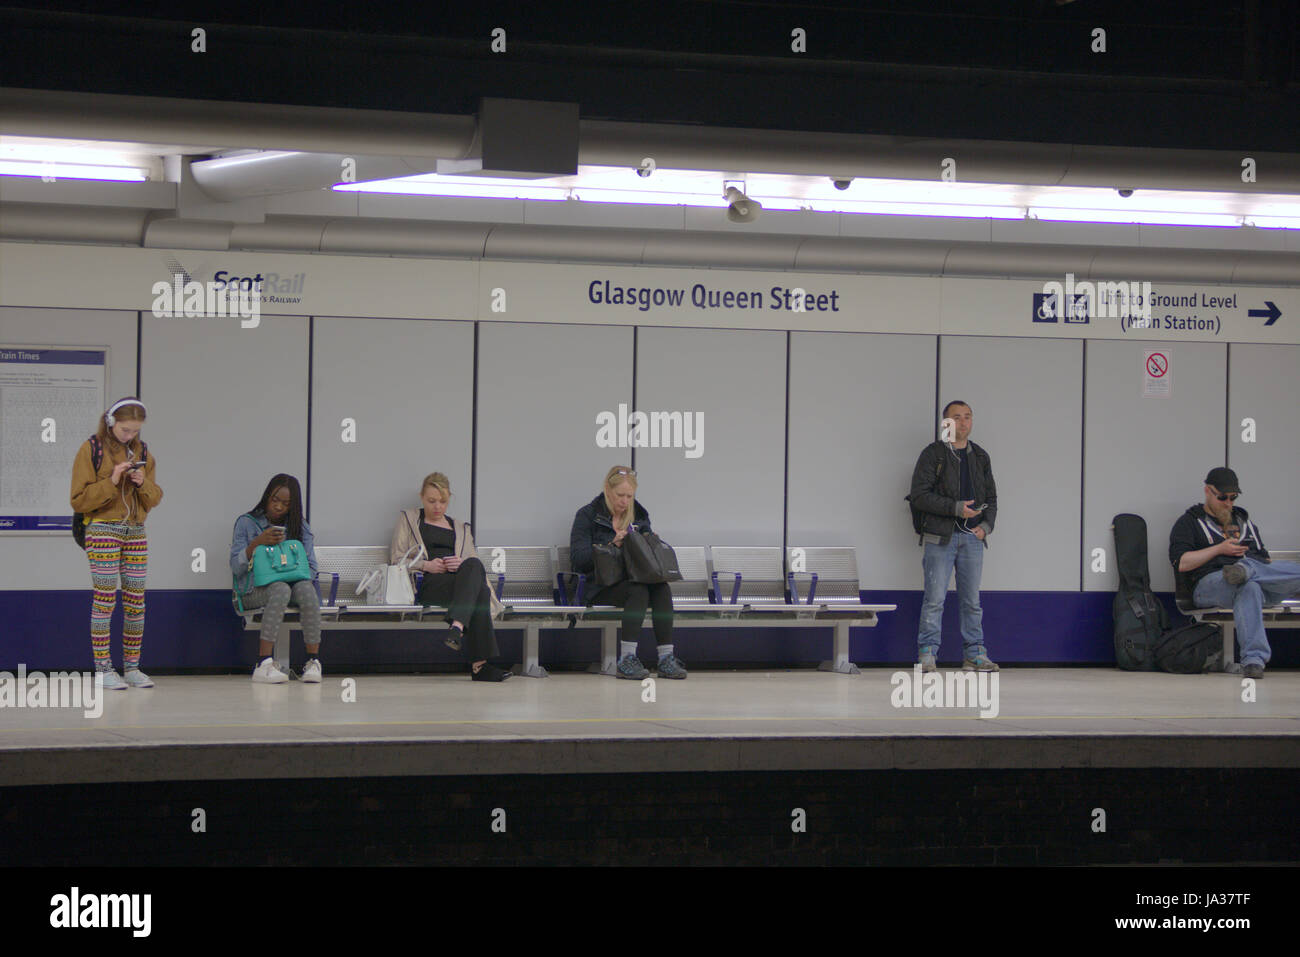 scotrail train station  station platform Glasgow Queen Street low level - Stock Image